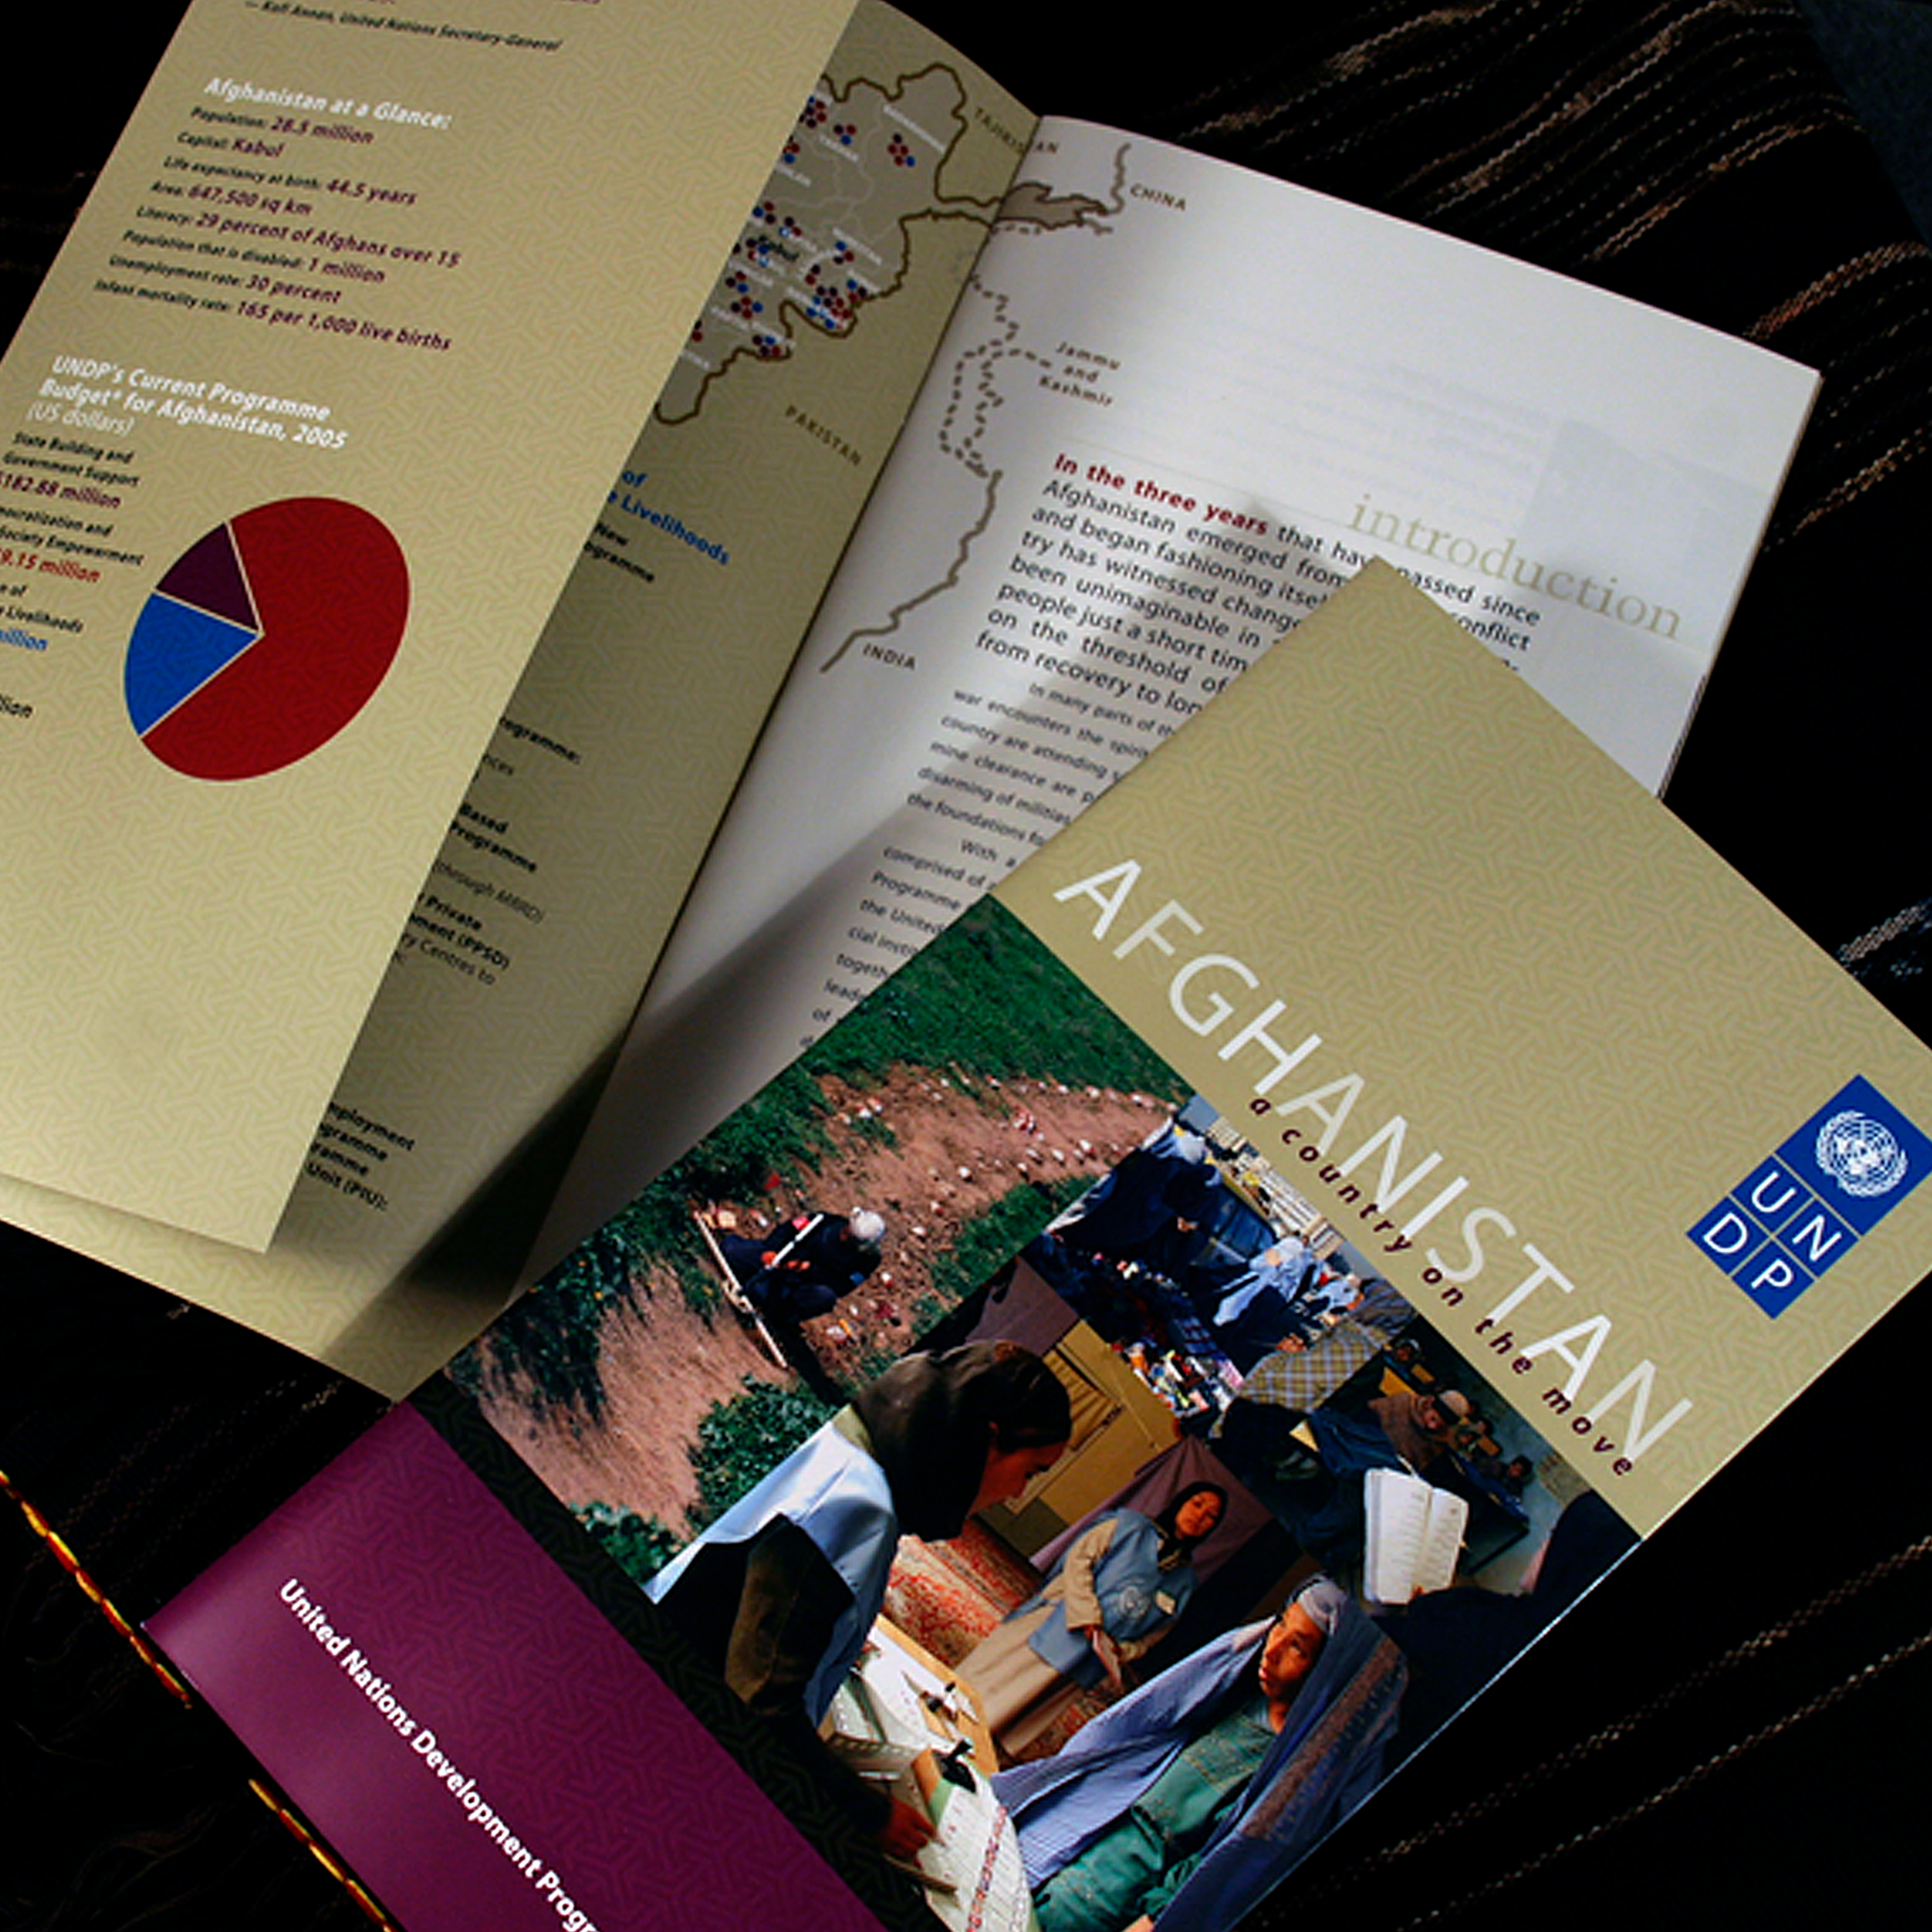 Informative Brochure   A successful brochure educating UNDP's audience on its involvement and successful campaigns – voting support, landmine eradication, education – in Afghanistan.